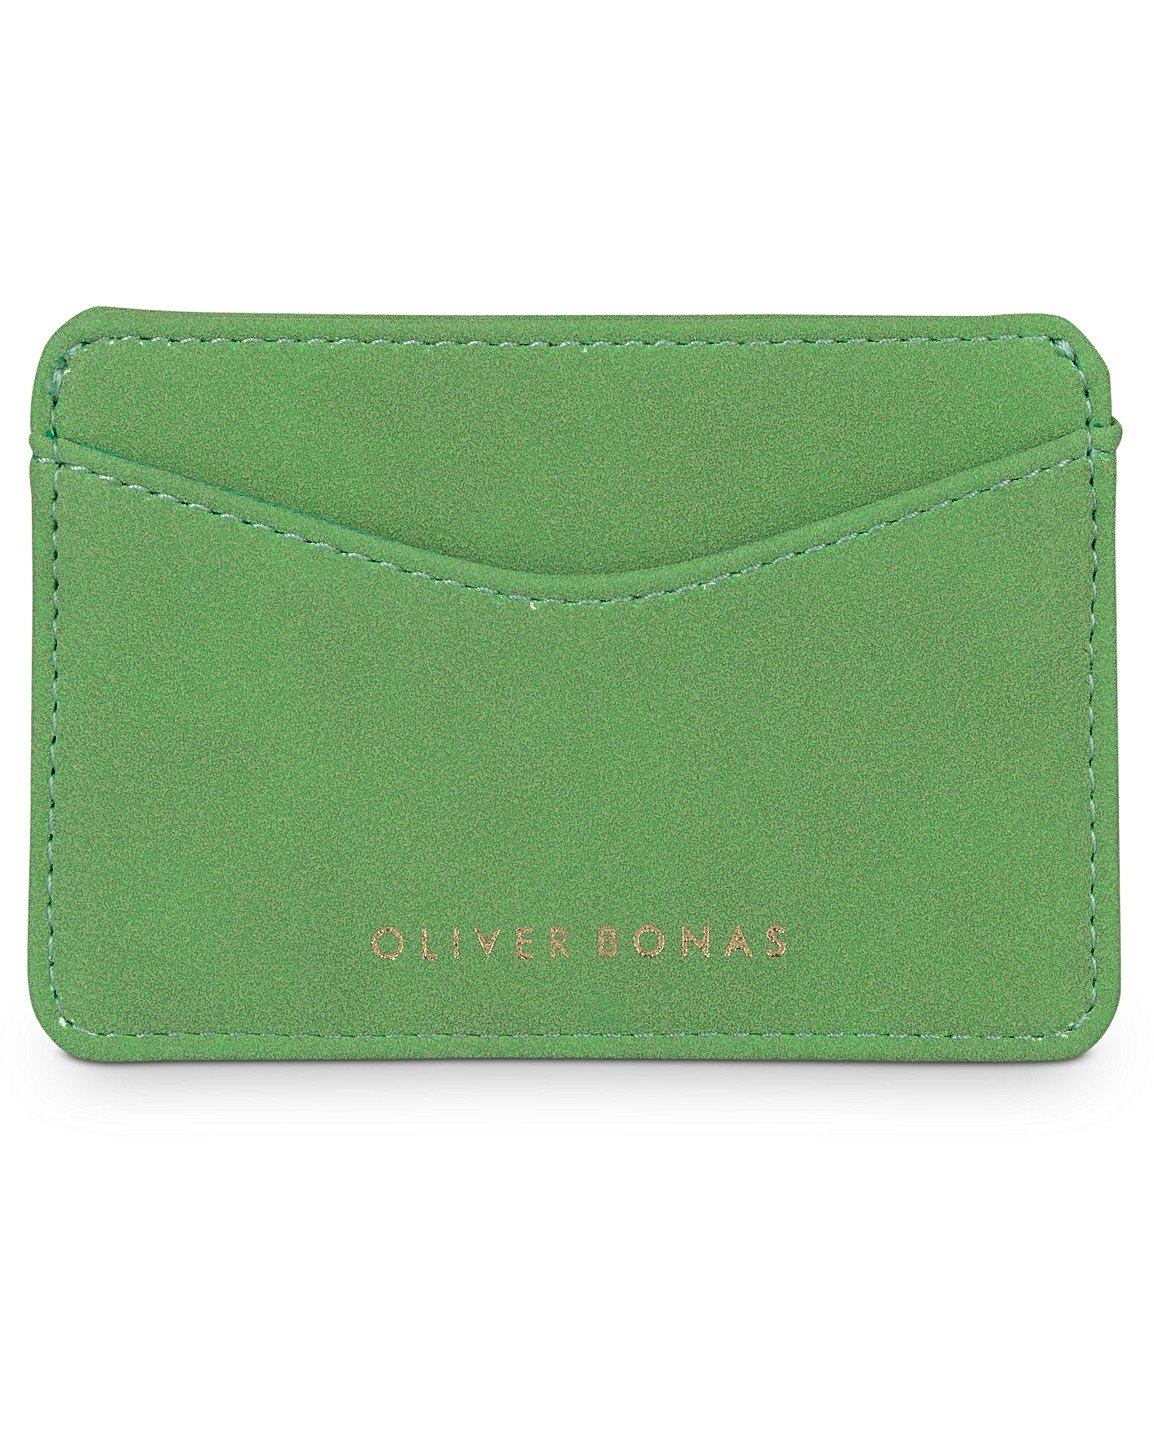 fde24029e62a Card Holders - Travel & Oyster Card Holders | Oliver Bonas